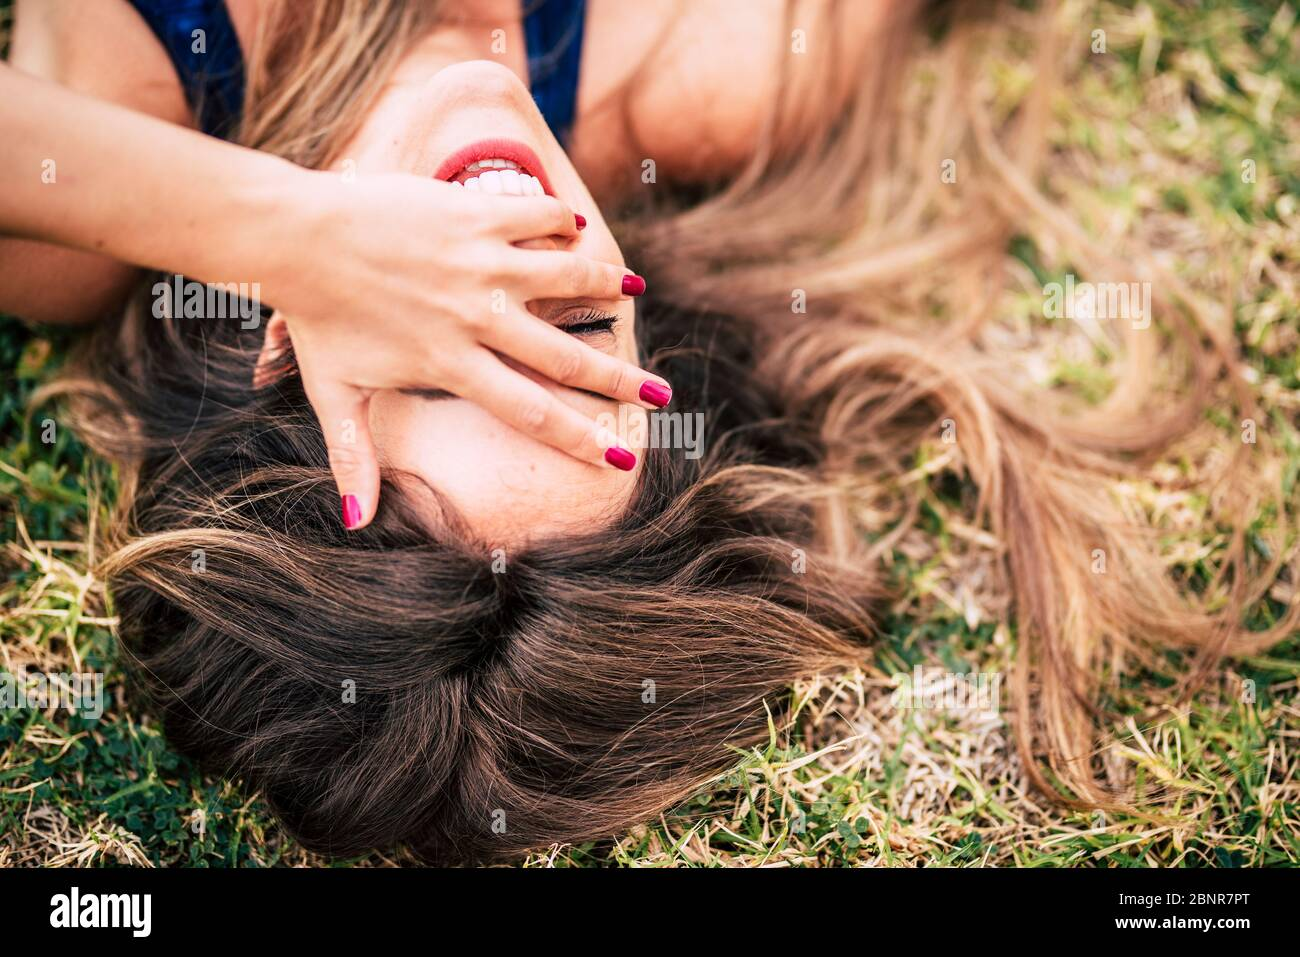 Laugh and cheerful people young caucasian woman lay down on the grass and laughing a lot with hand on face - beautiful healthy long brown hair and happiness joyful concept Stock Photo